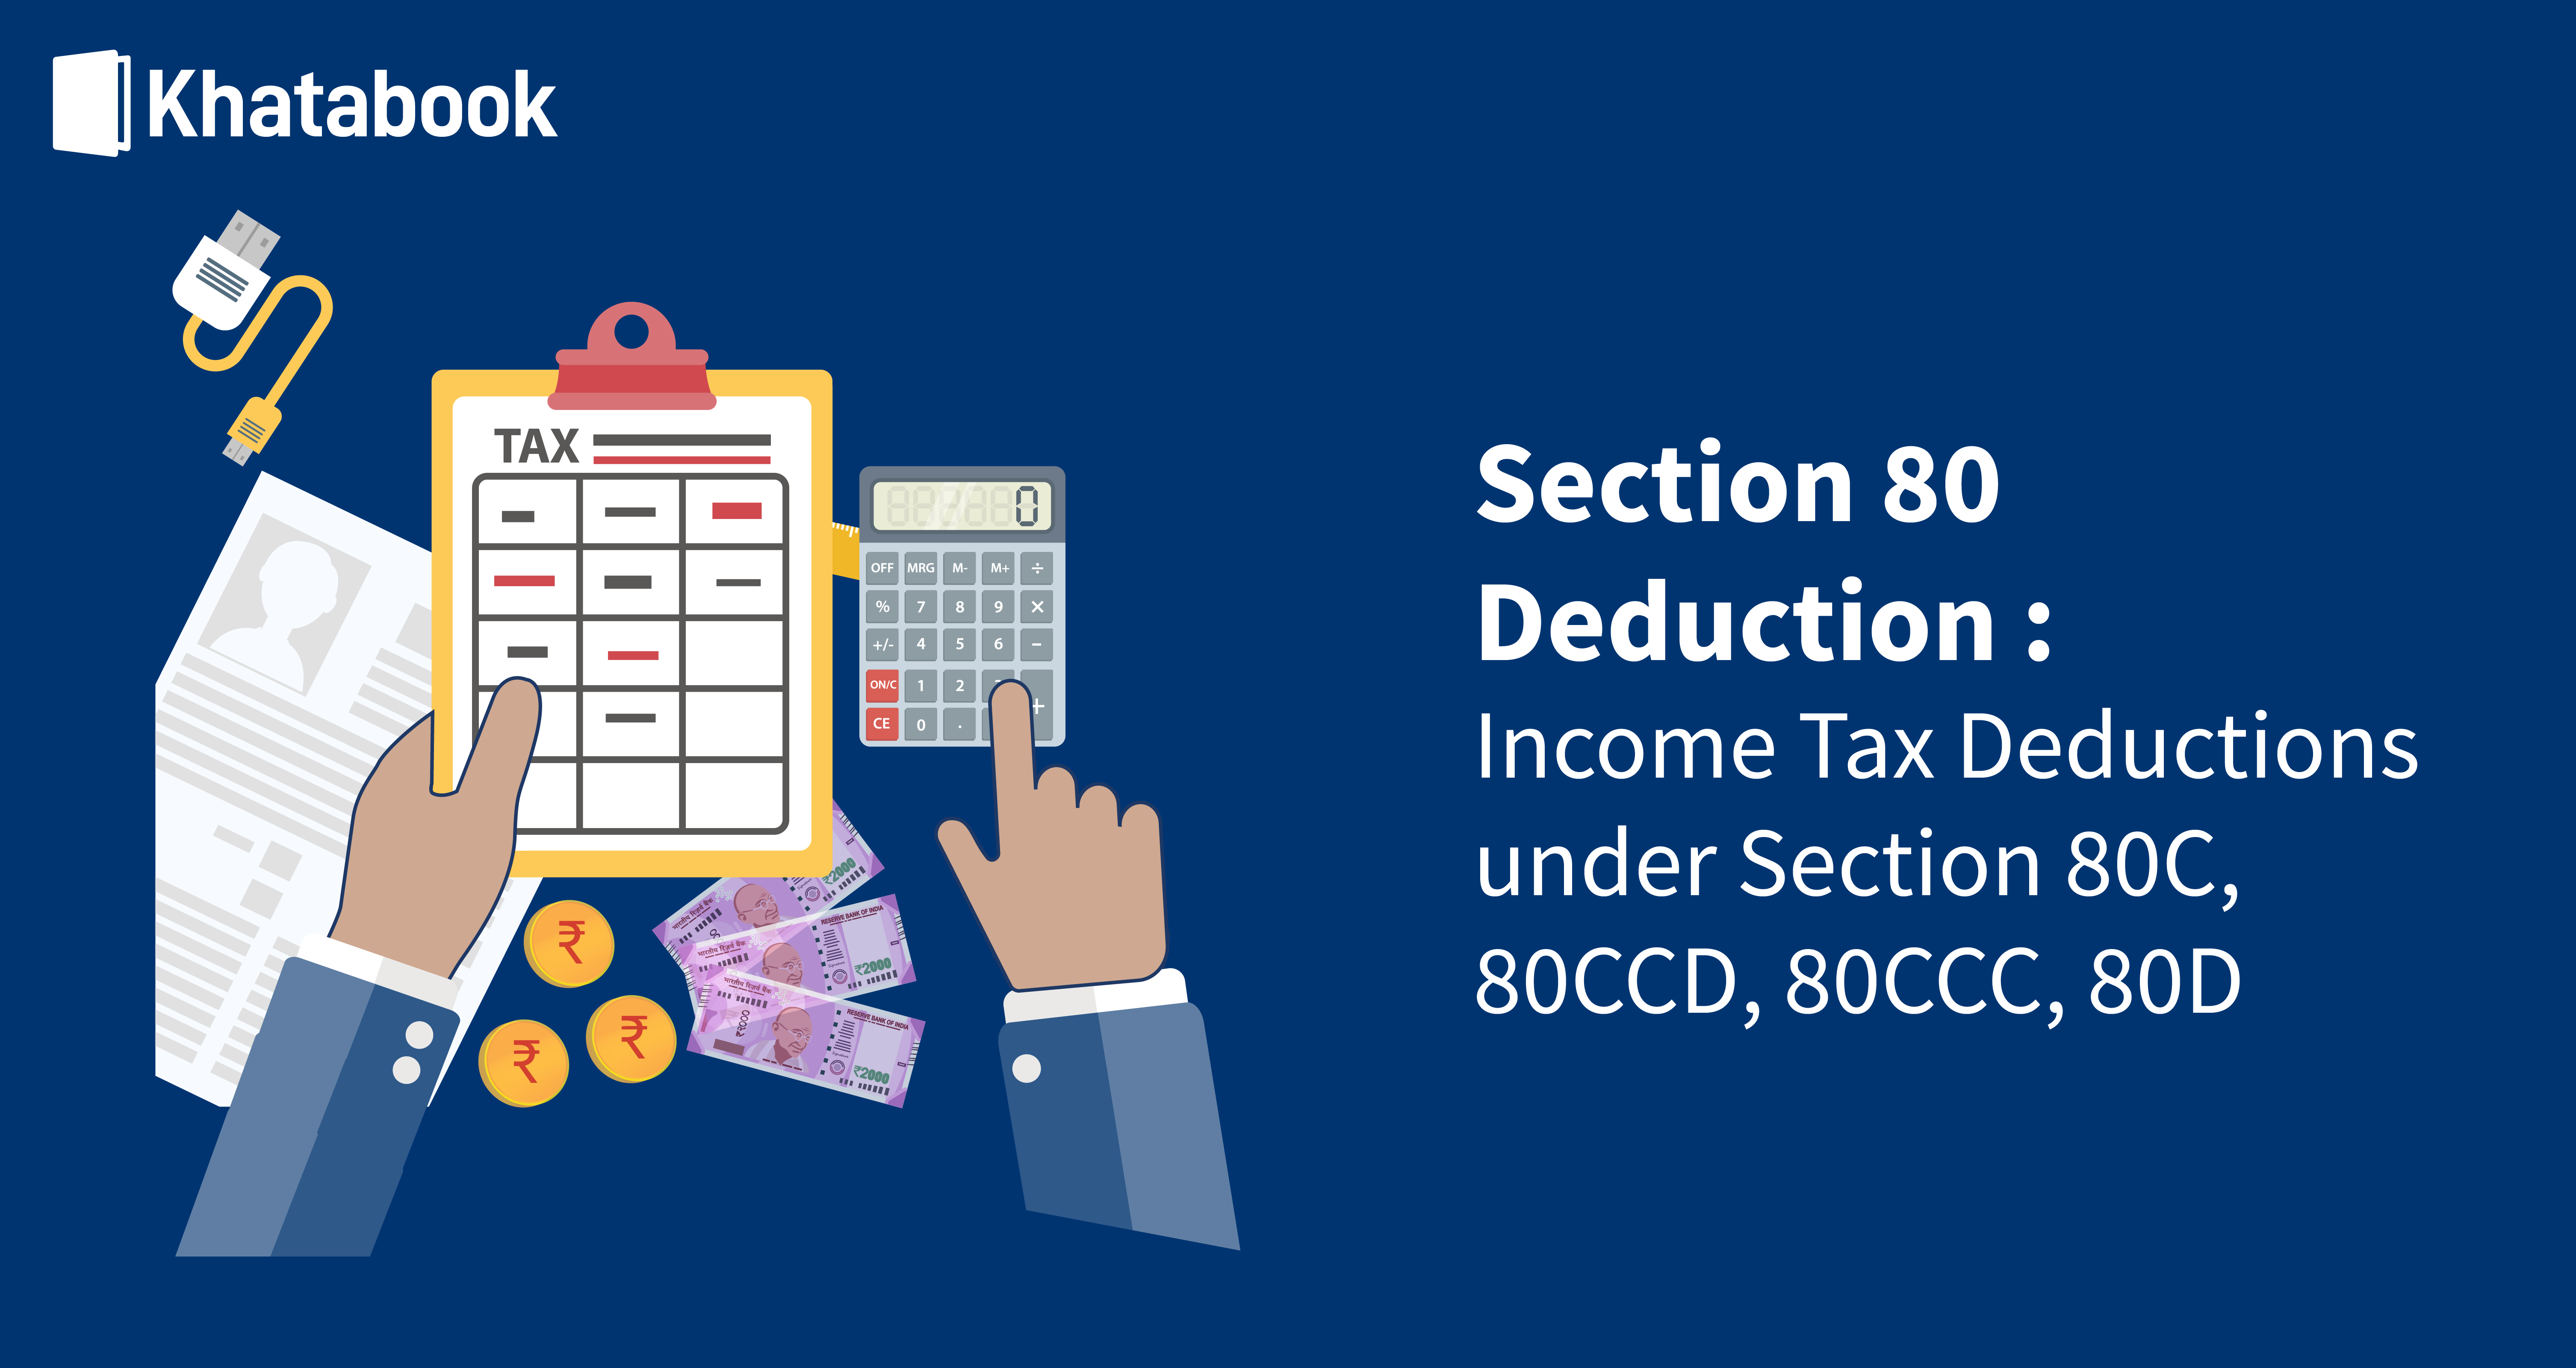 Deductions under Section 80: Section 80C, 80CCC, 80CCD & 80D Income Tax